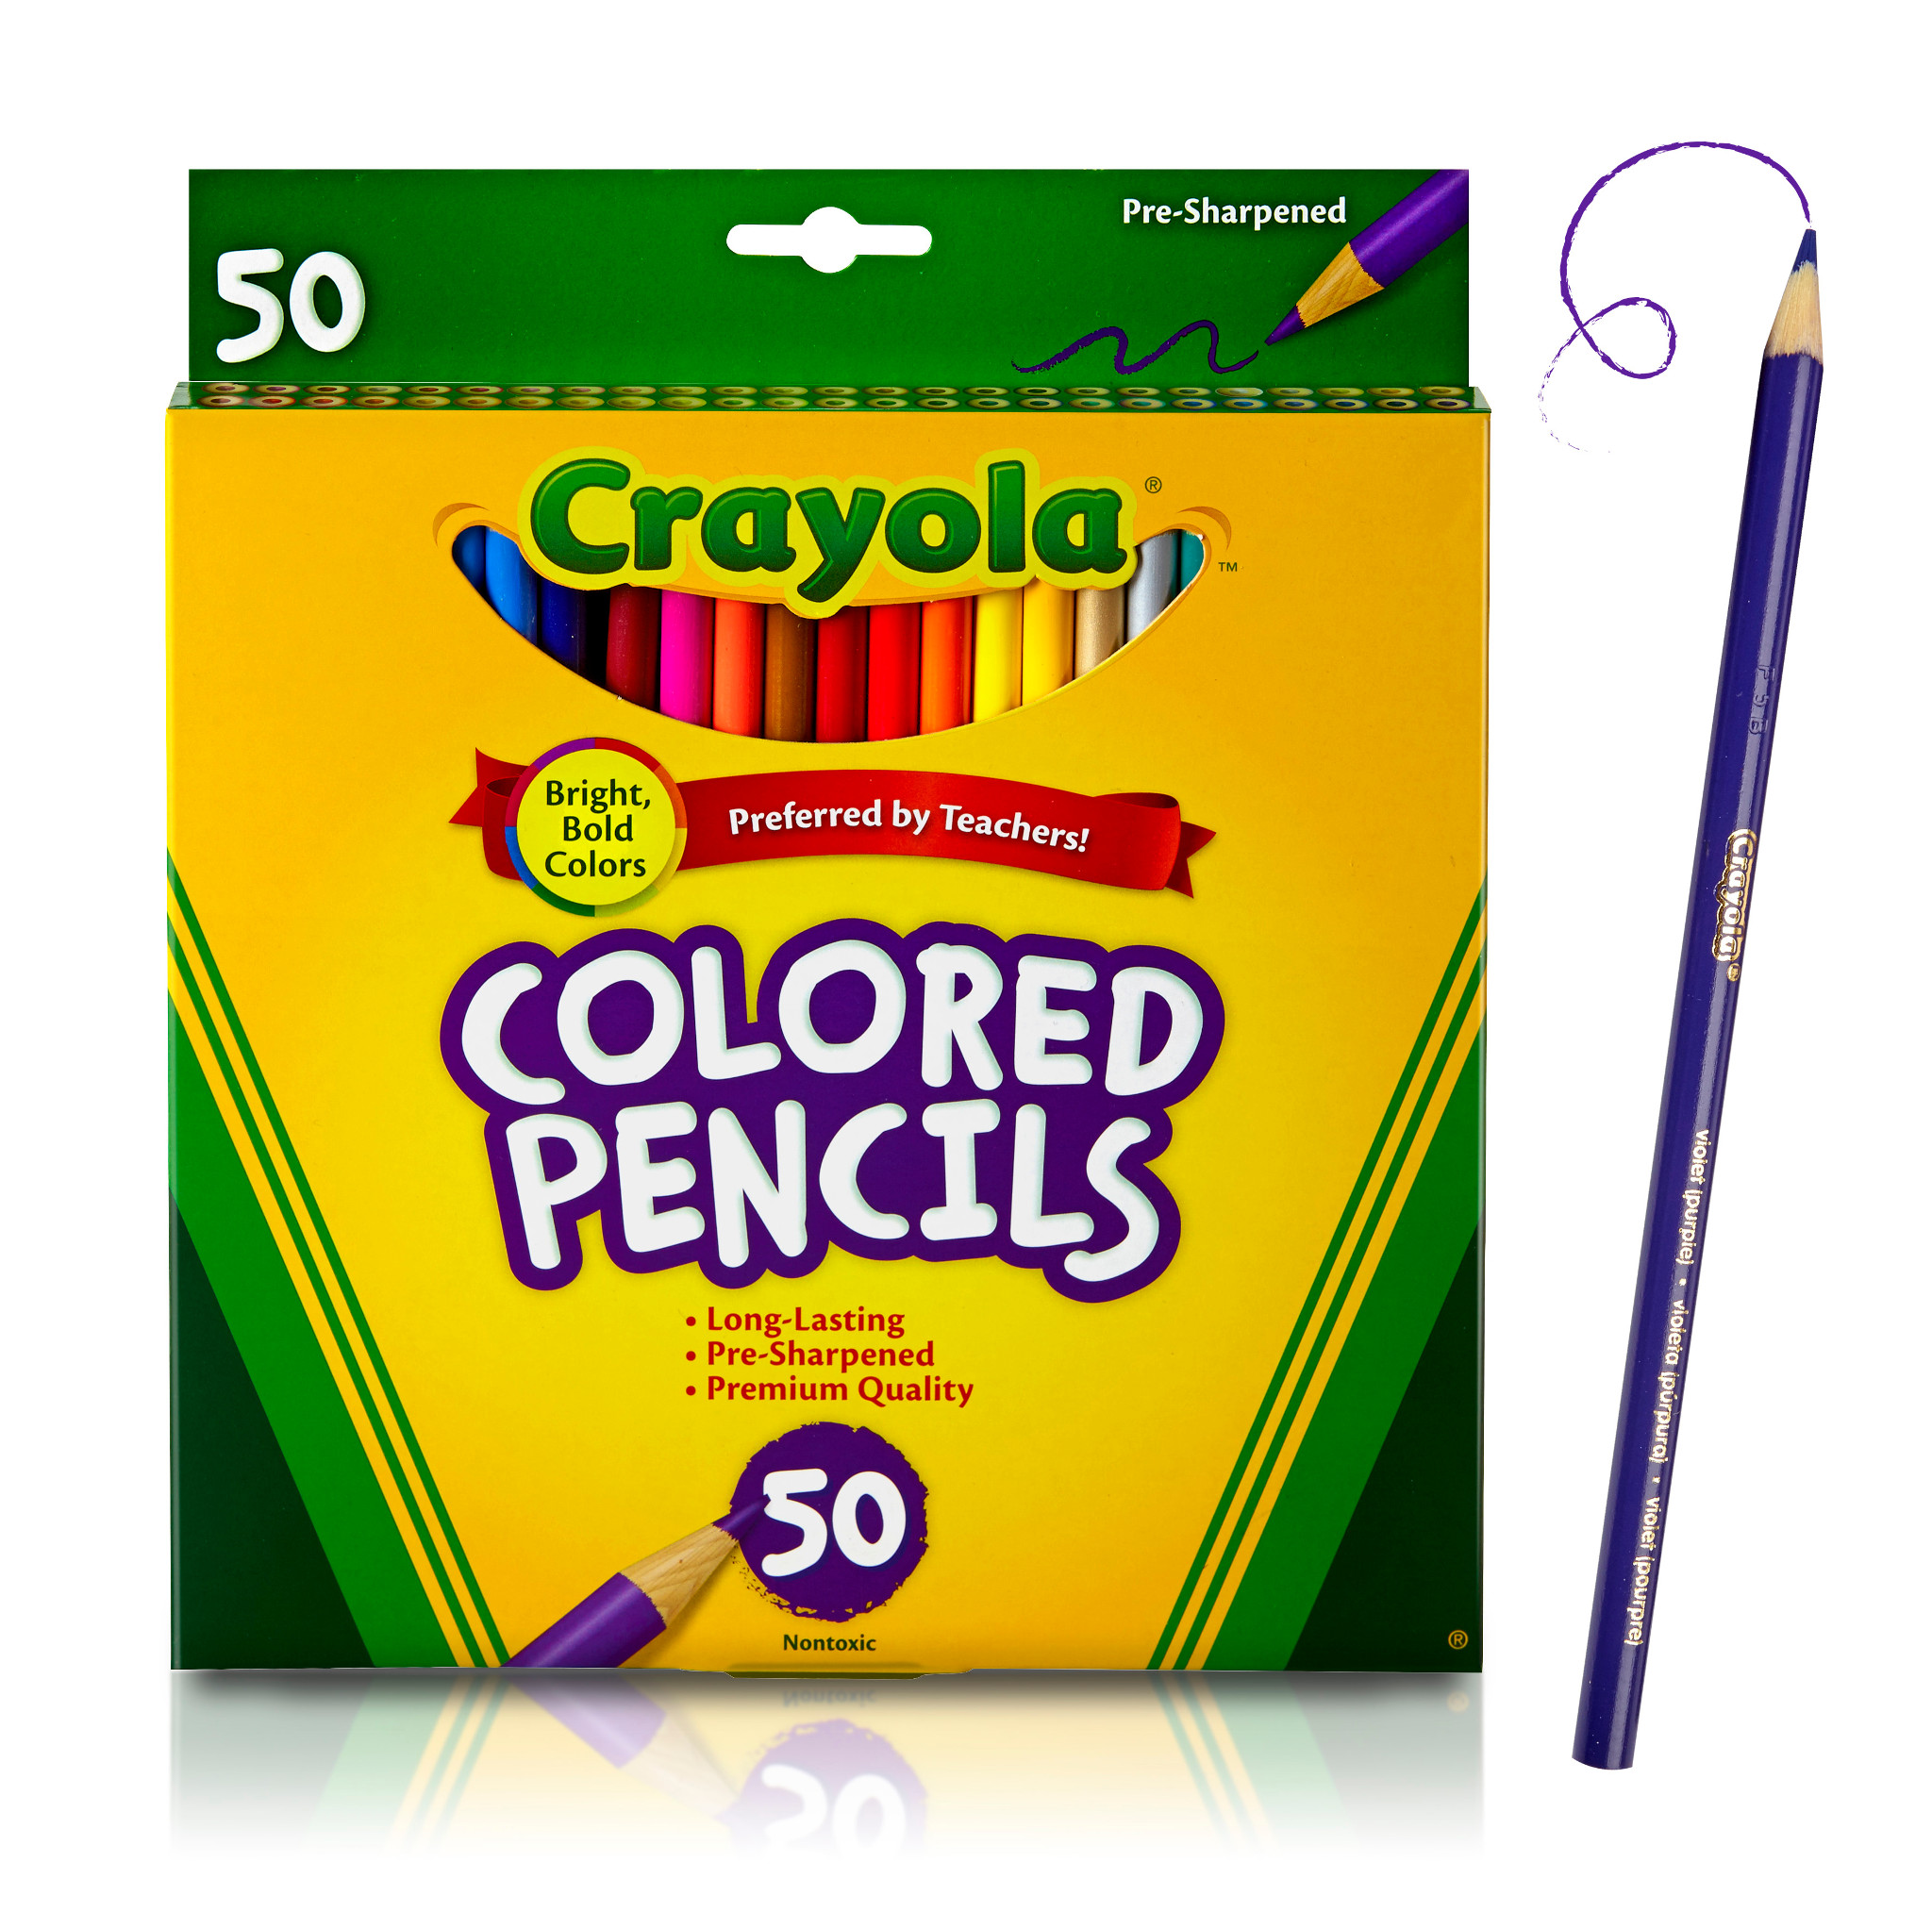 Crayola Colored Pencils, Coloring Supplies, 50 Count